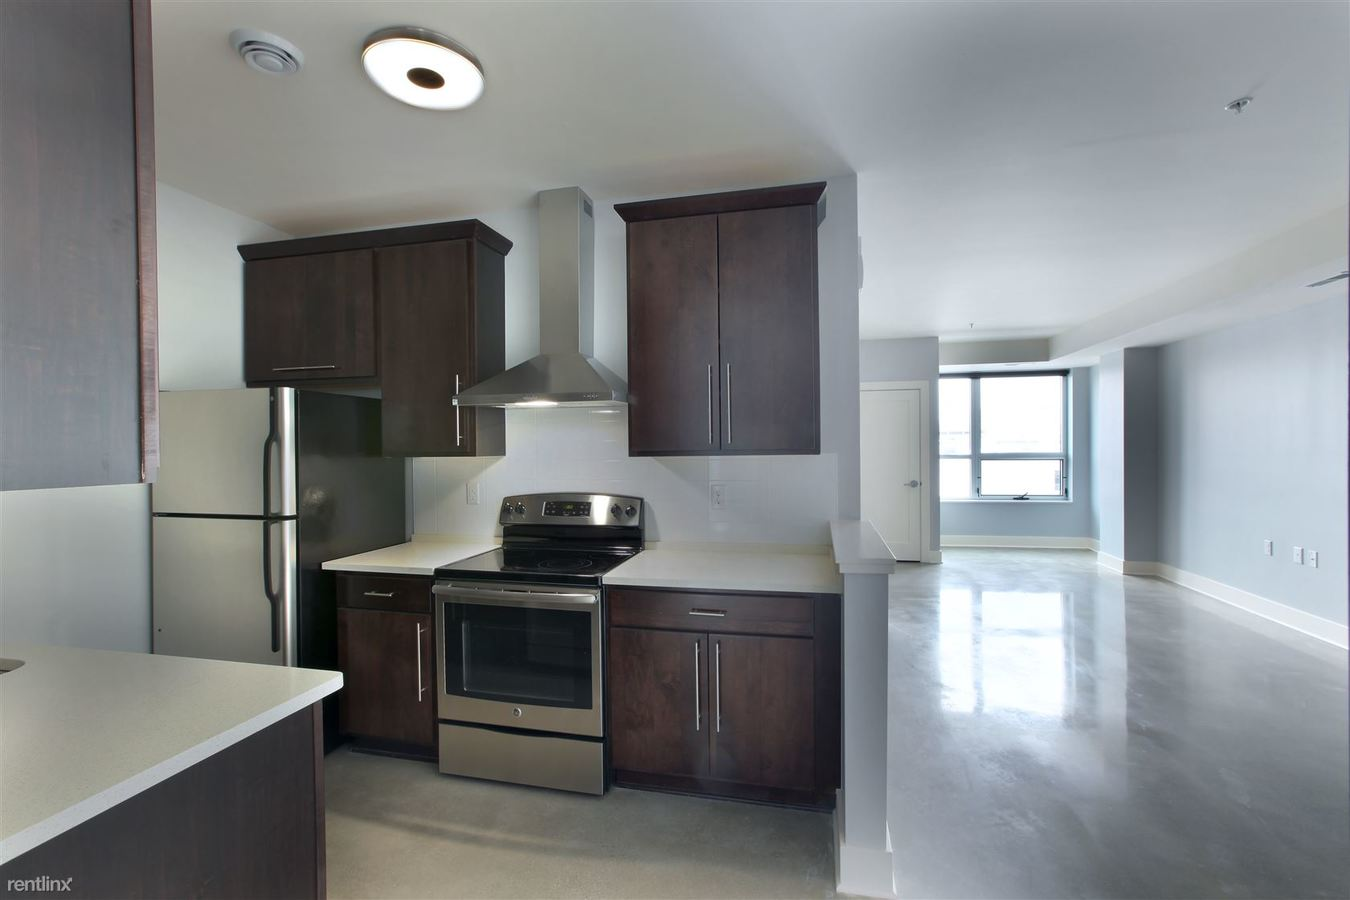 2 Bedrooms 2 Bathrooms Apartment for rent at 205 South Division Avenue Apartments in Grand Rapids, MI